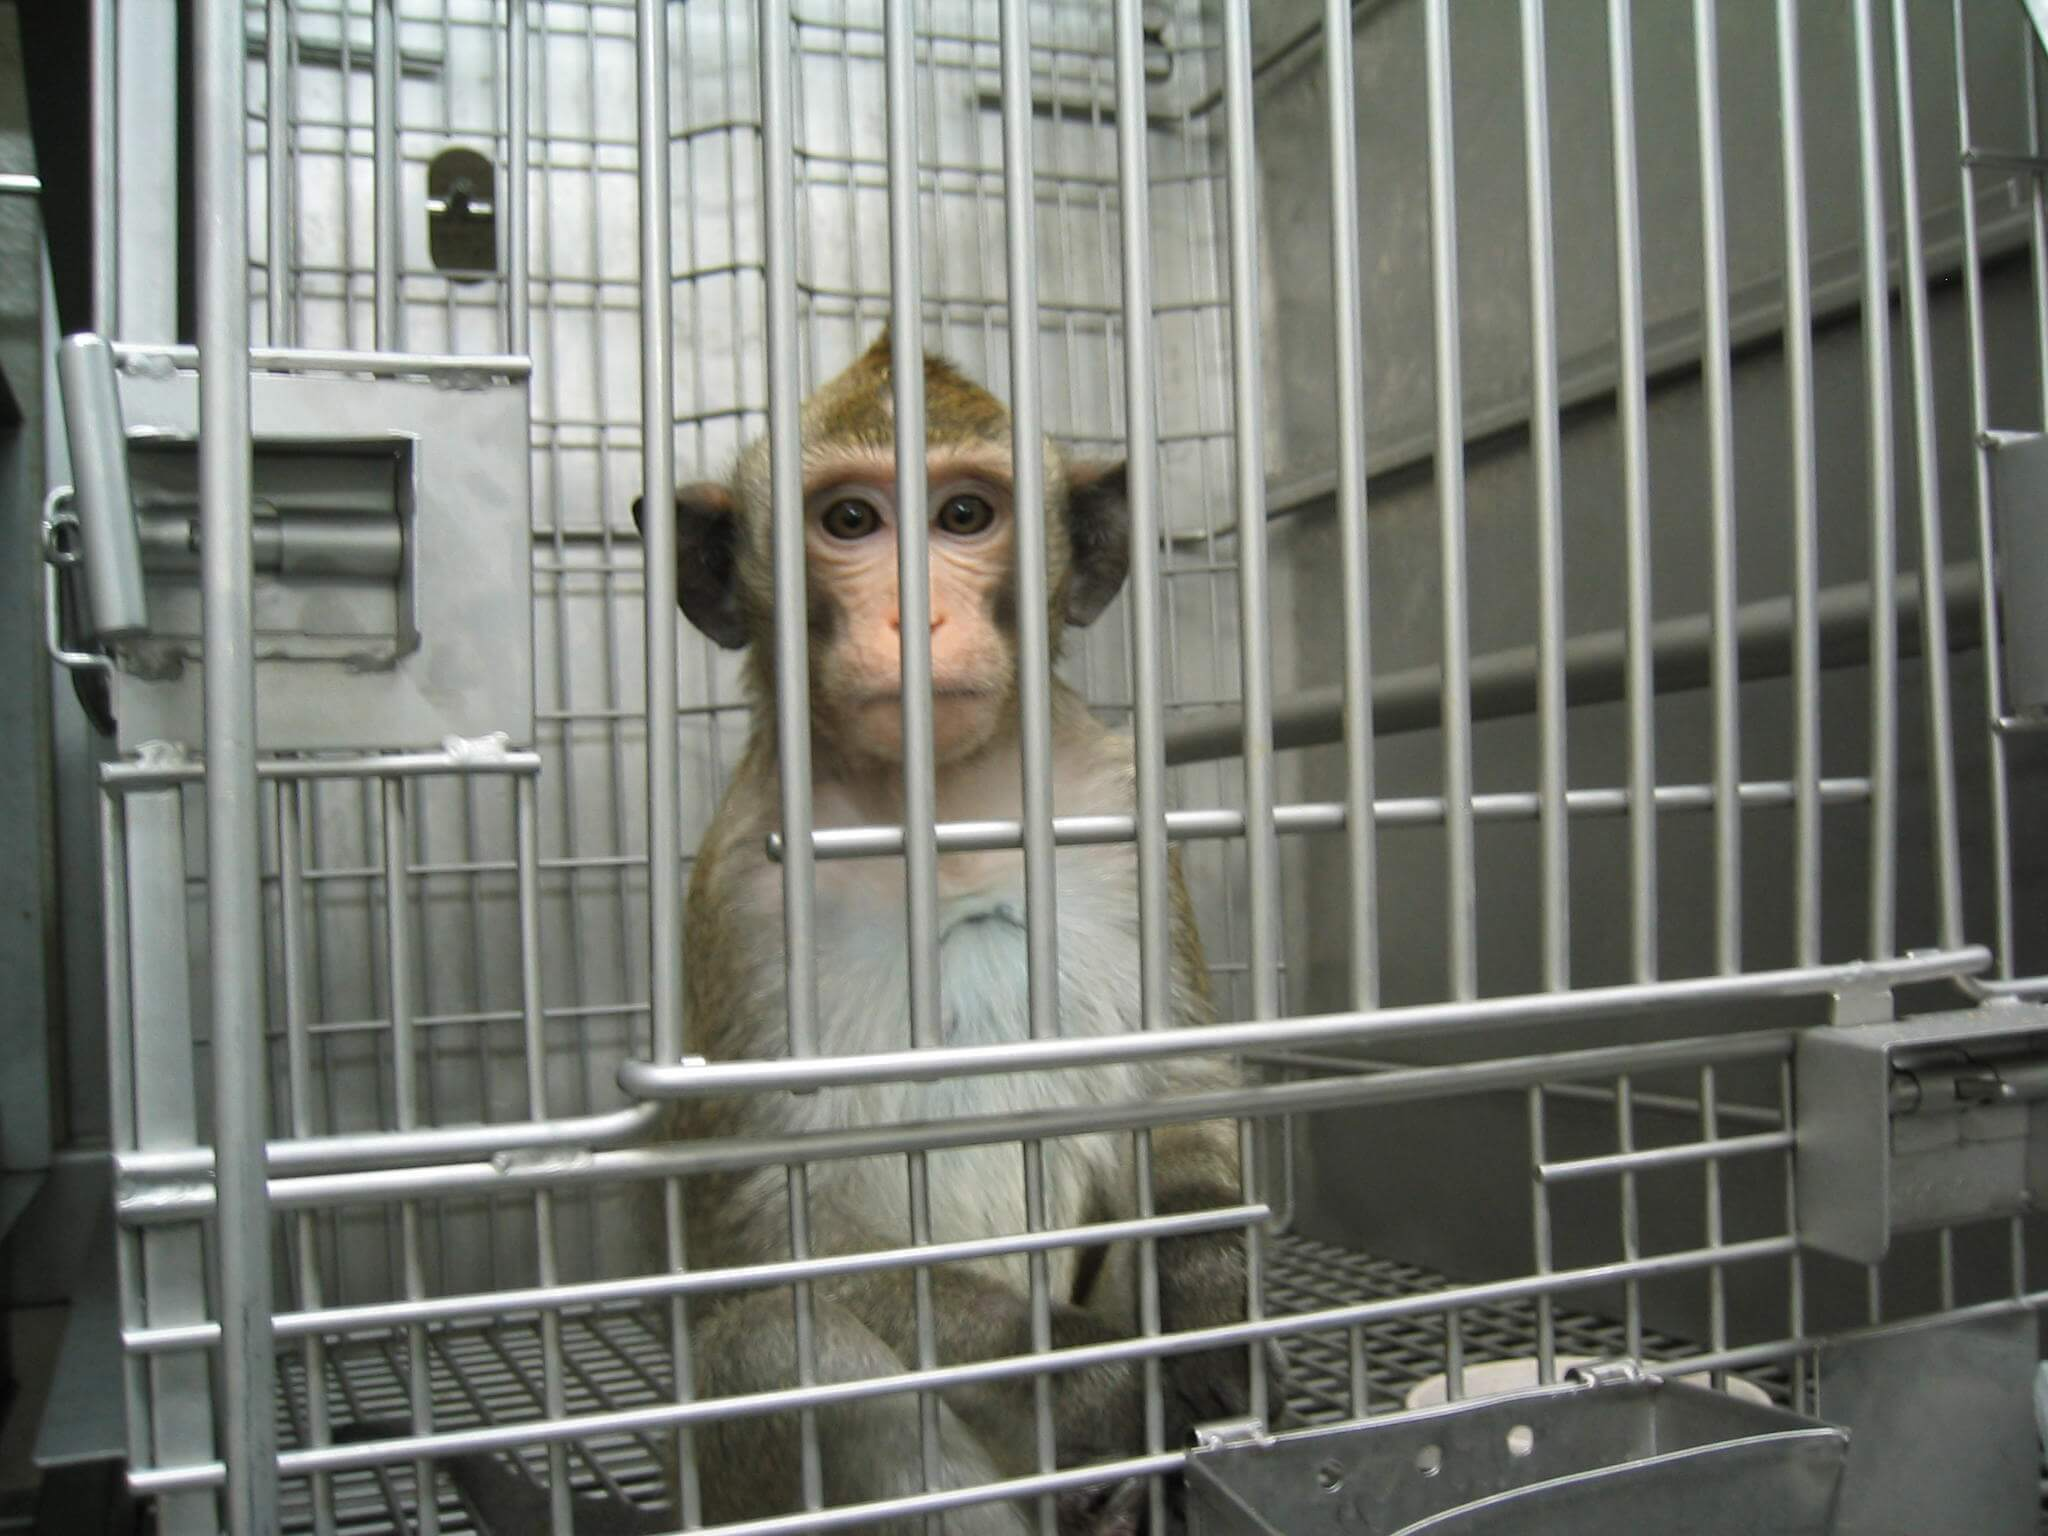 monkey sitting in cage, looking out